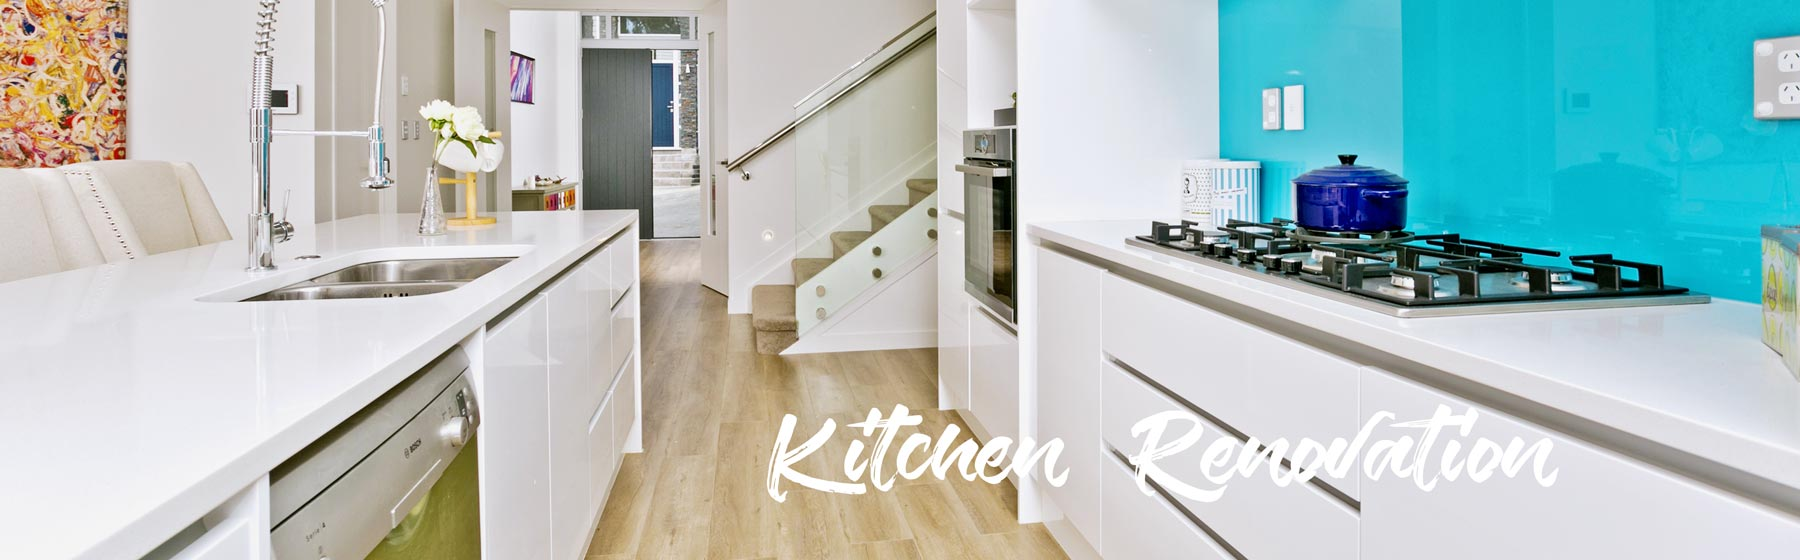 Kitchen Renovation Costs In Auckland